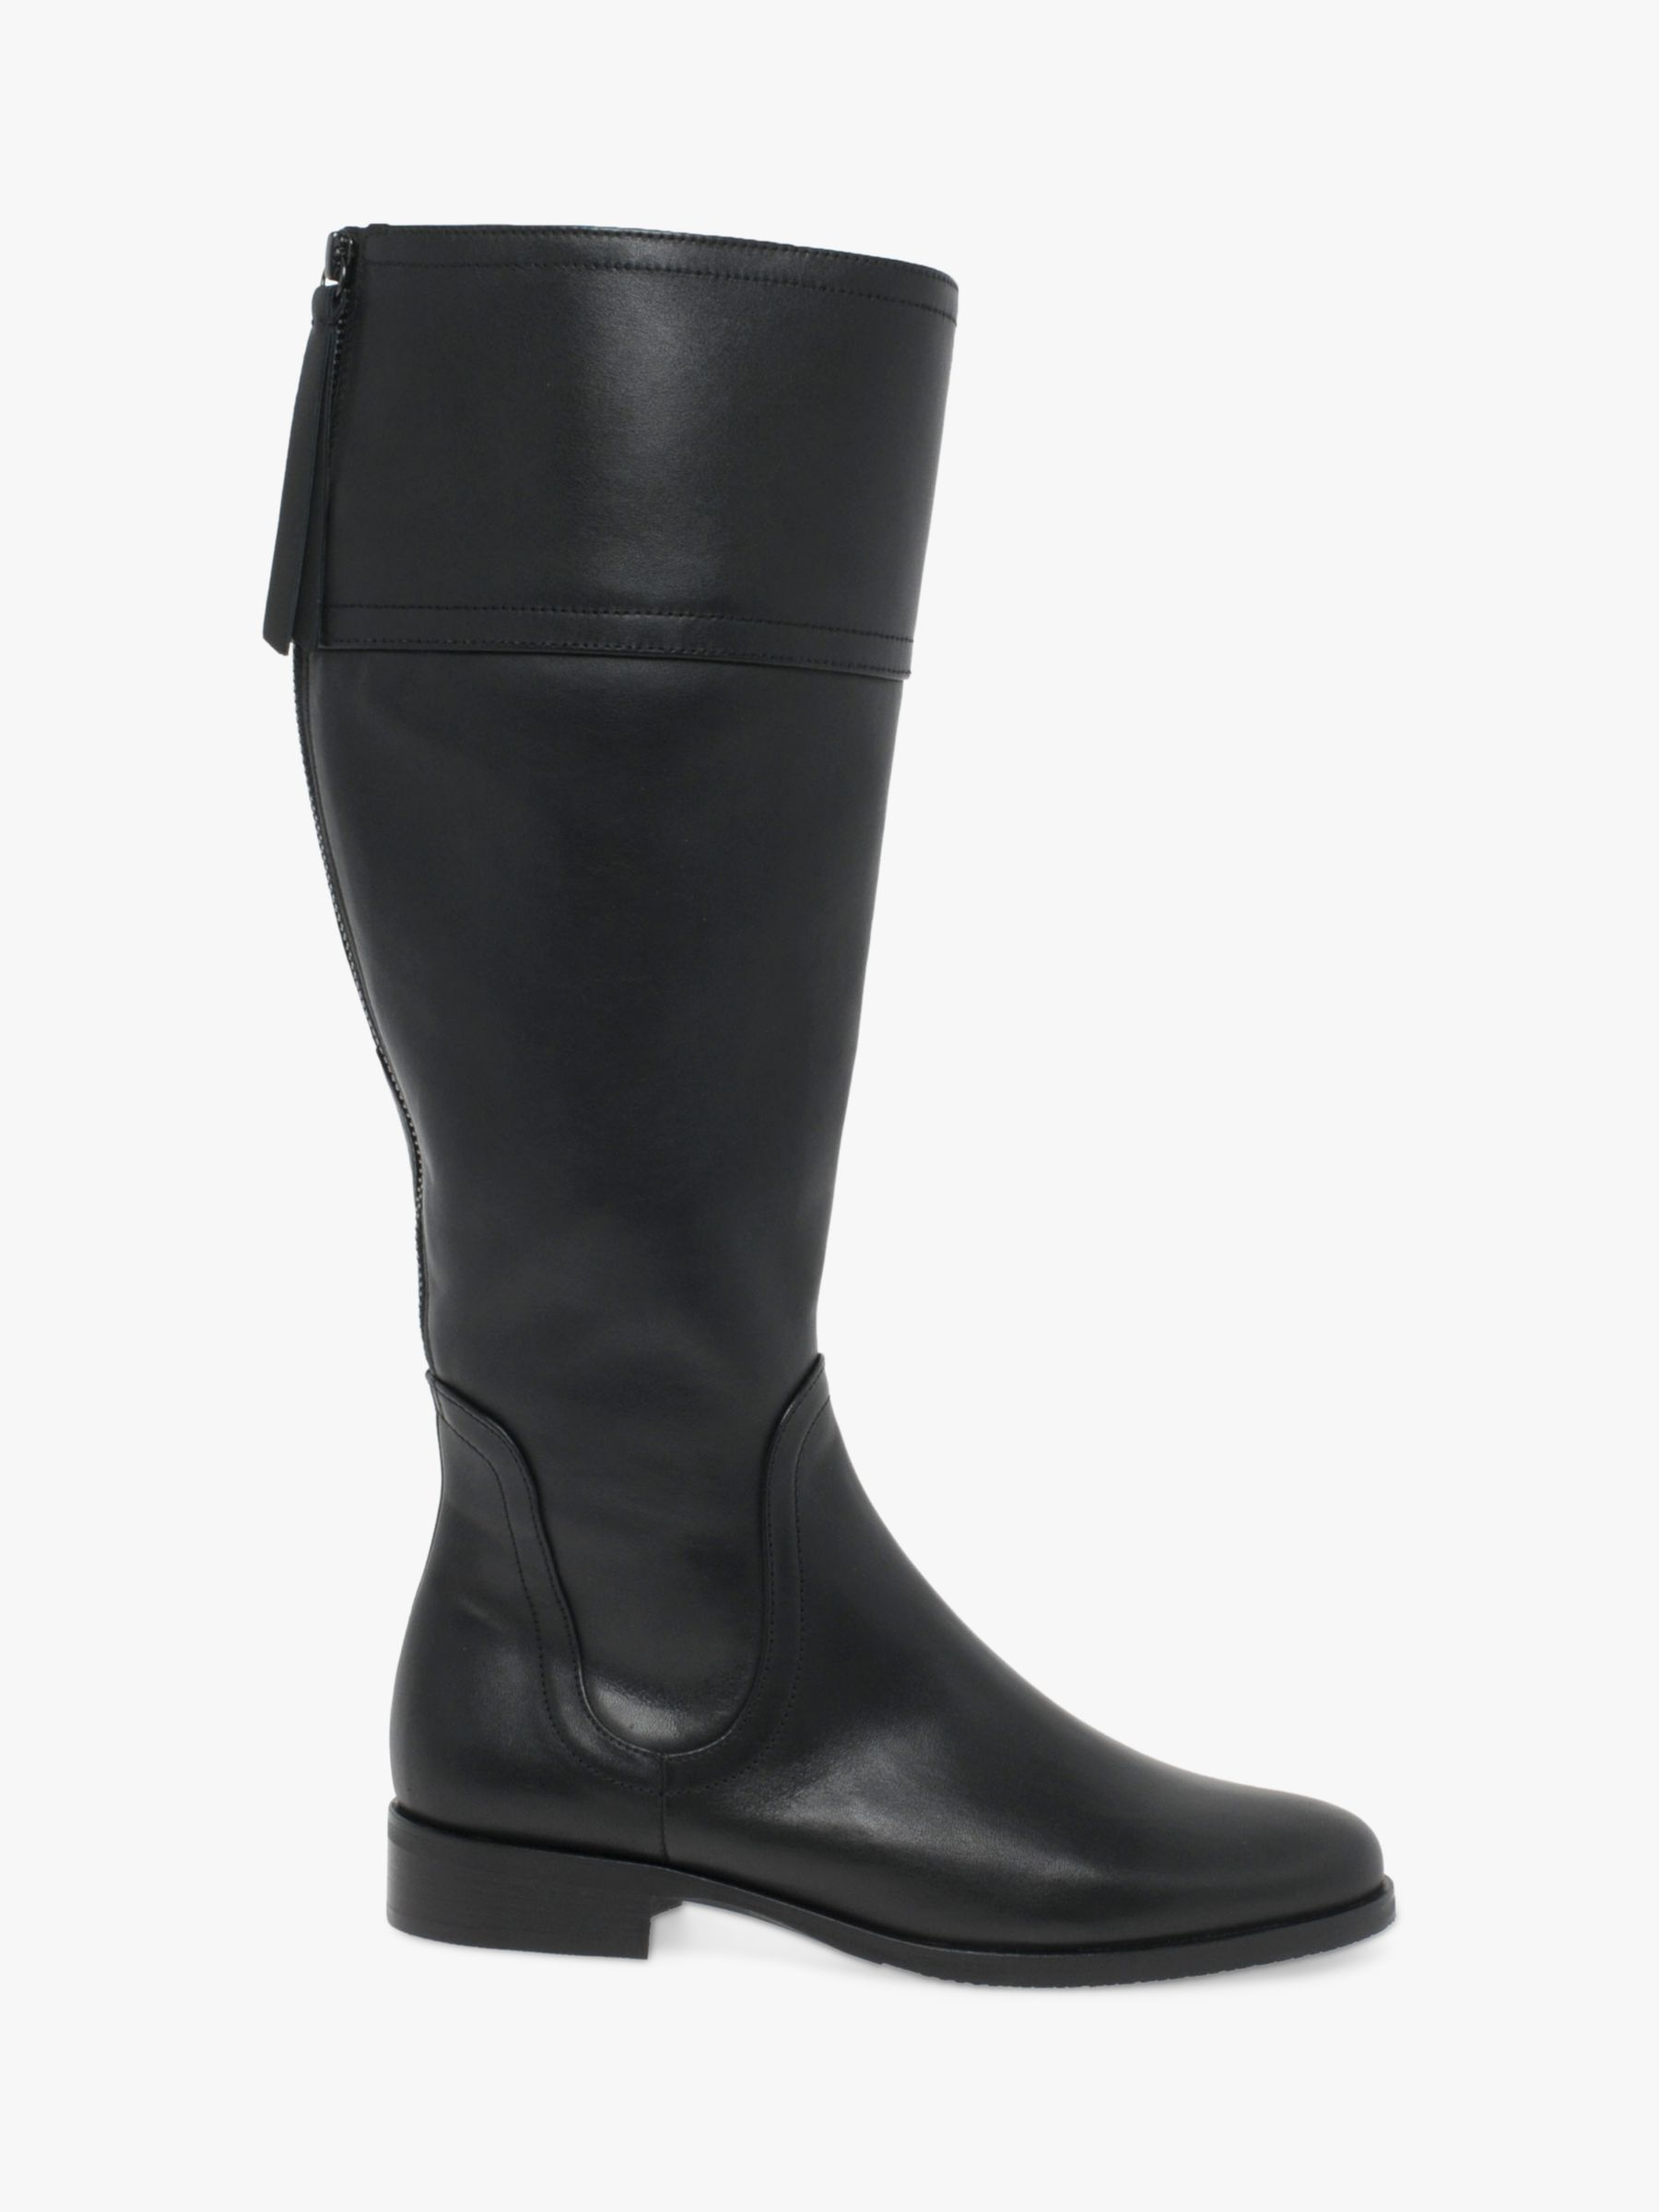 Gabor Gabor Keates Leather Calf Boots, Black